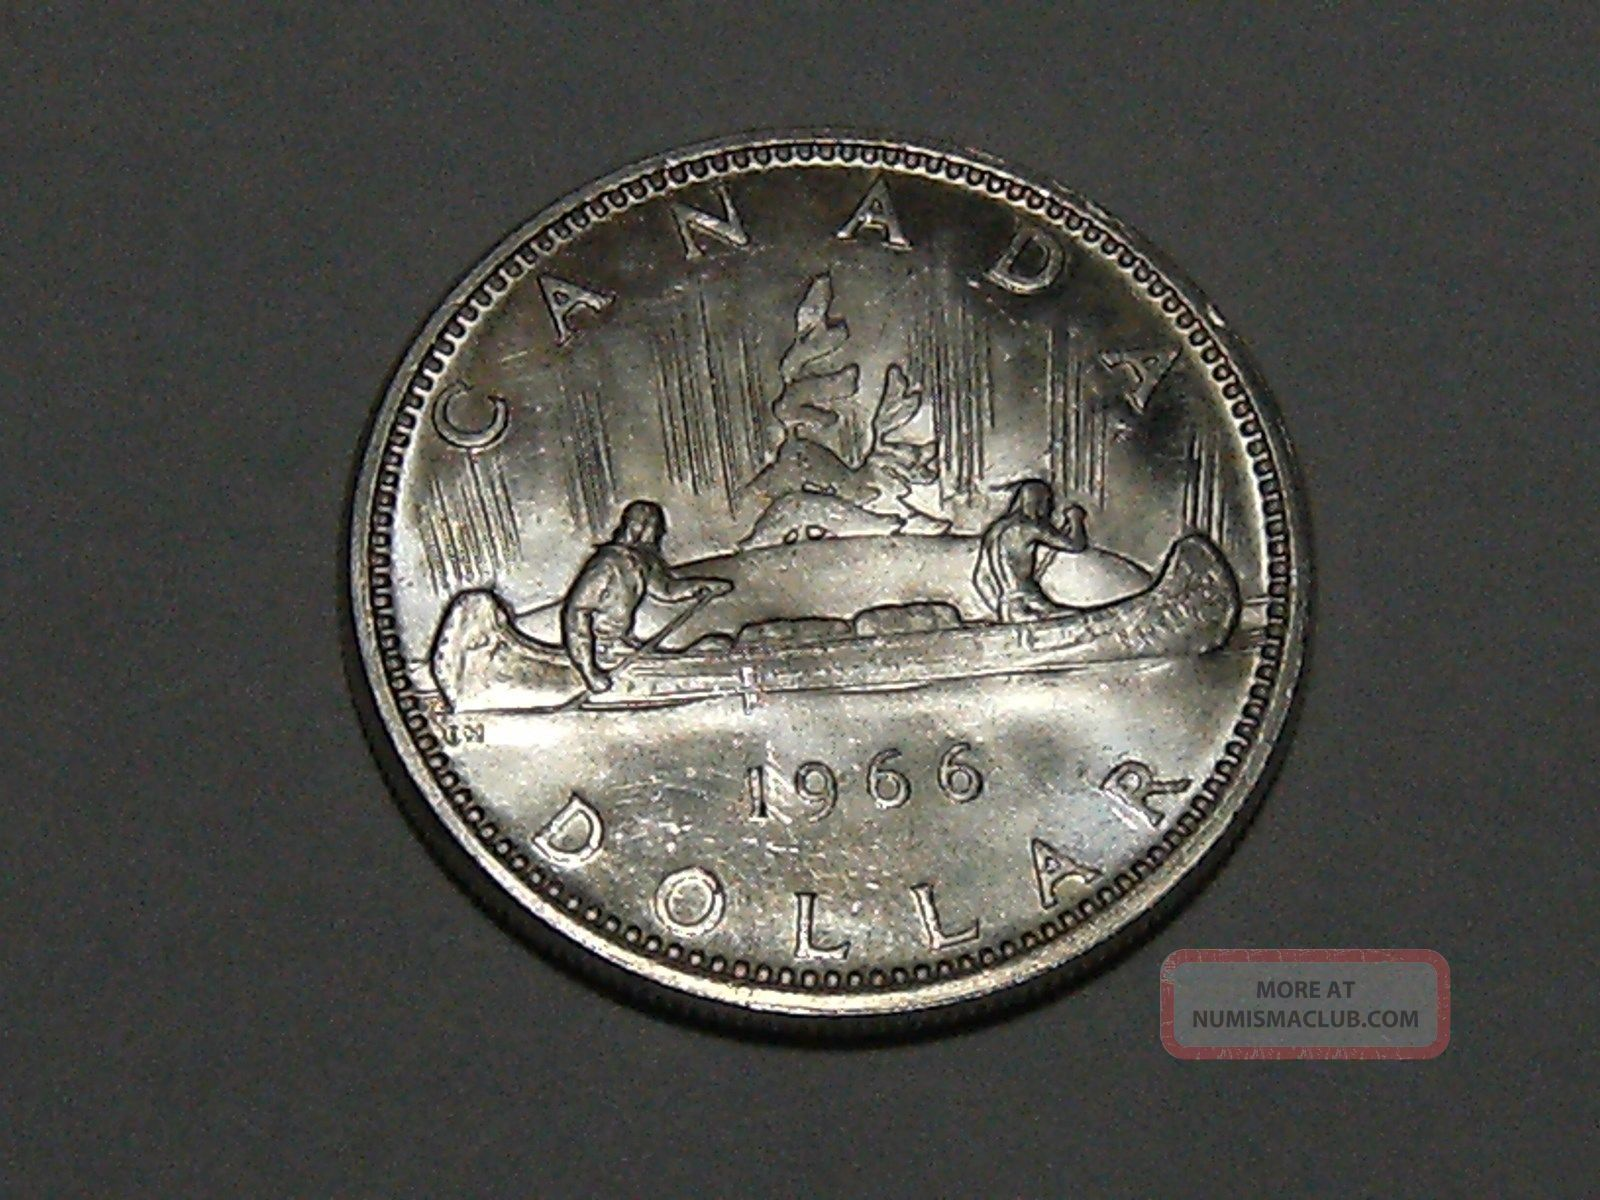 1966 Canadian Silver Dollar (bu) 3362 Coins: Canada photo